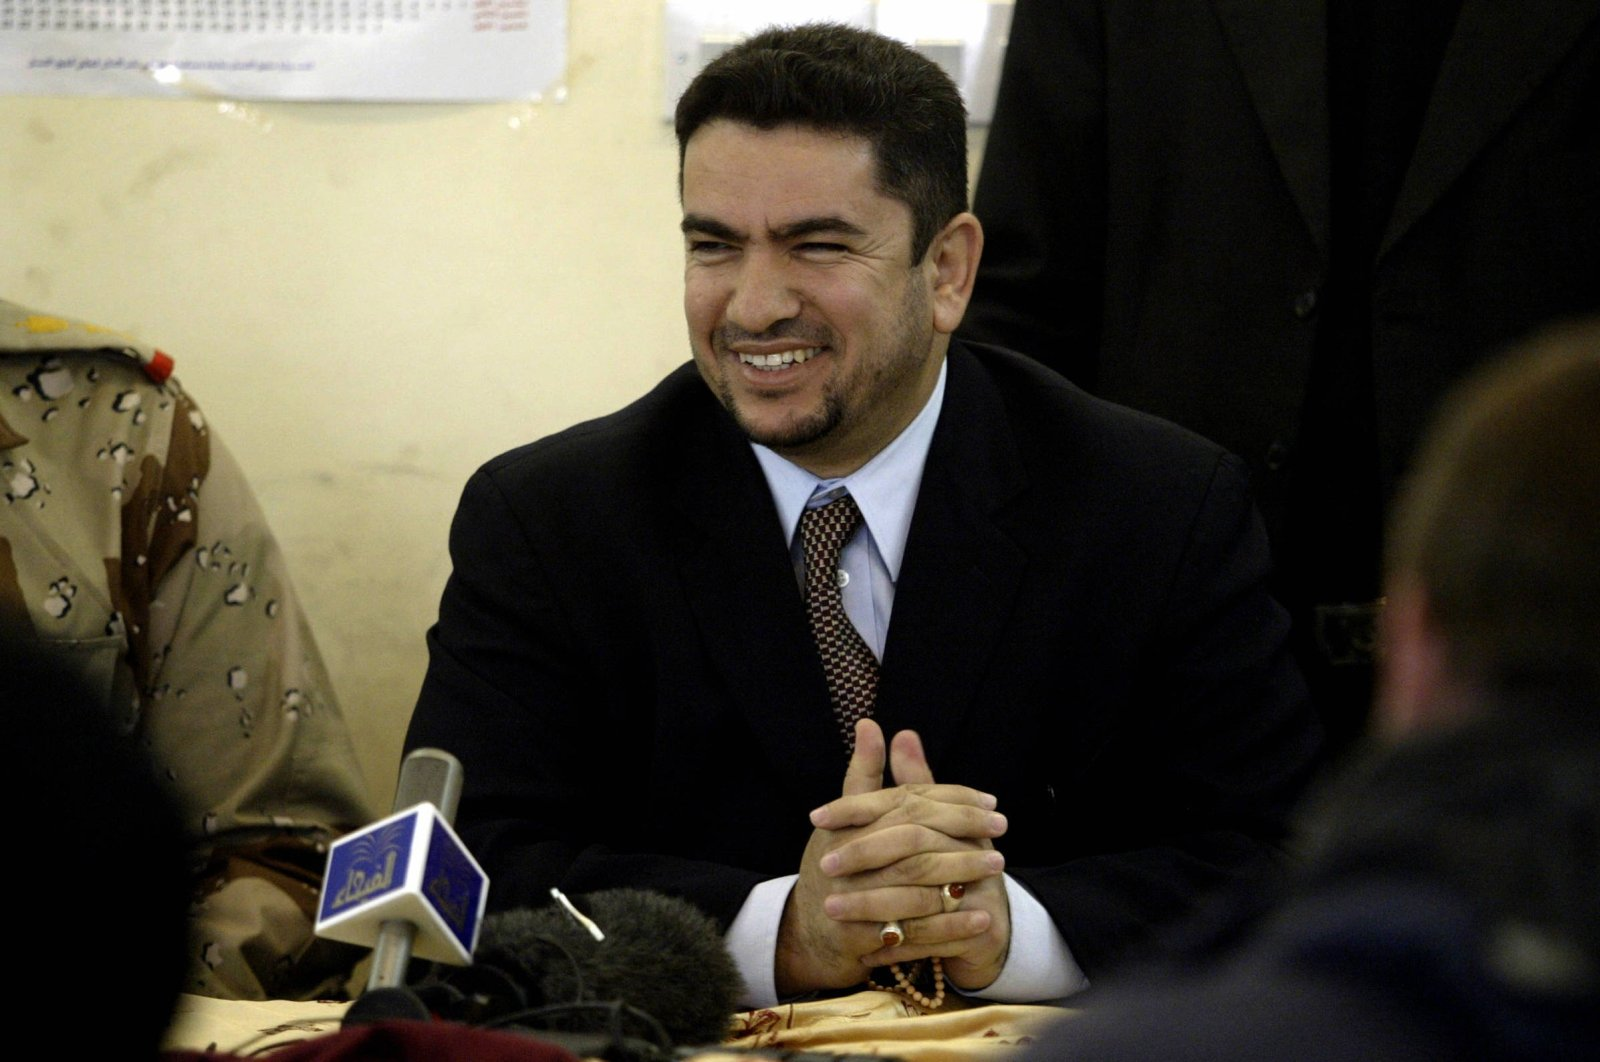 Iraq's new prime minister-designate, Adnan al-Zurfi, speaks to the press at the Human Rights Center, Baghdad, Jan. 25, 2005. (AFP Photo)